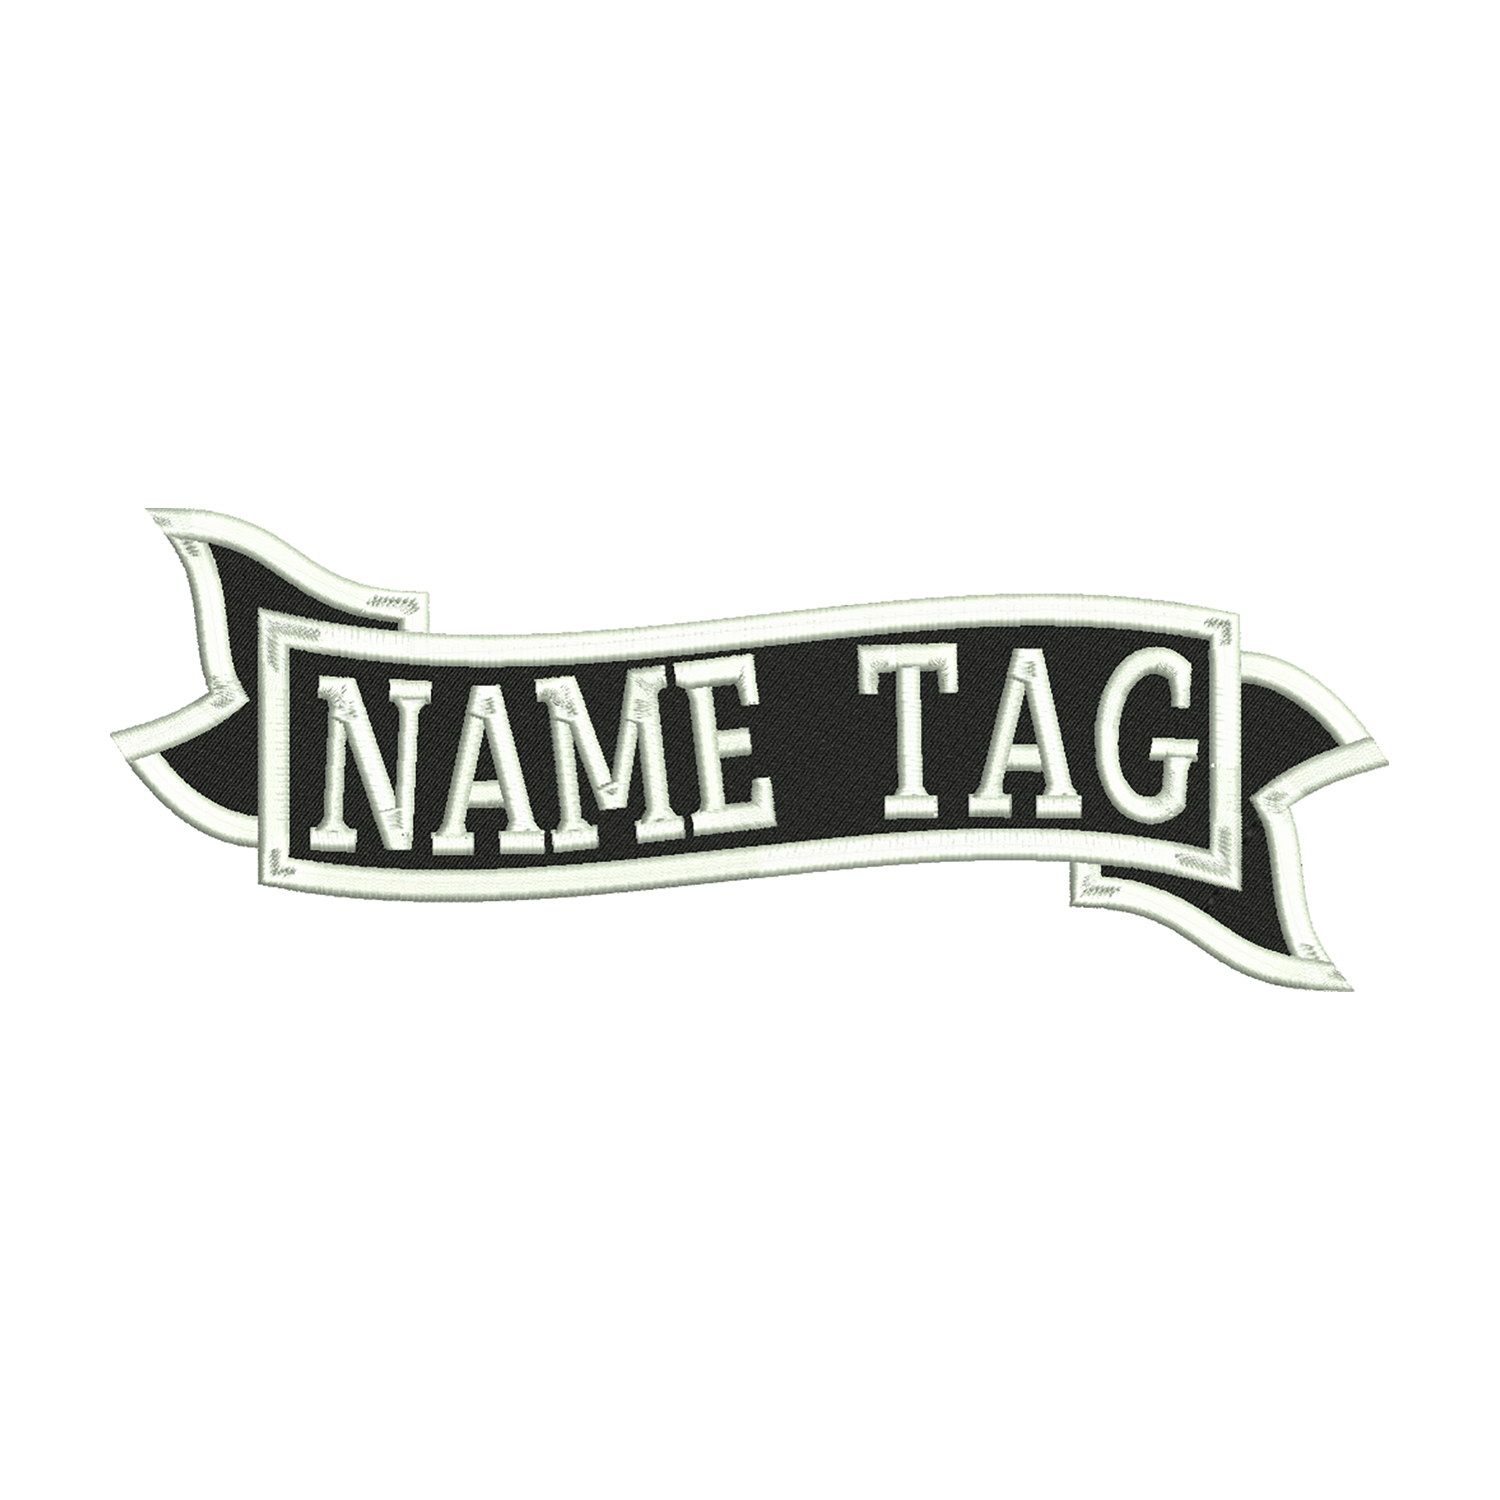 Custom Banner Name Tag Biker Vest Patch